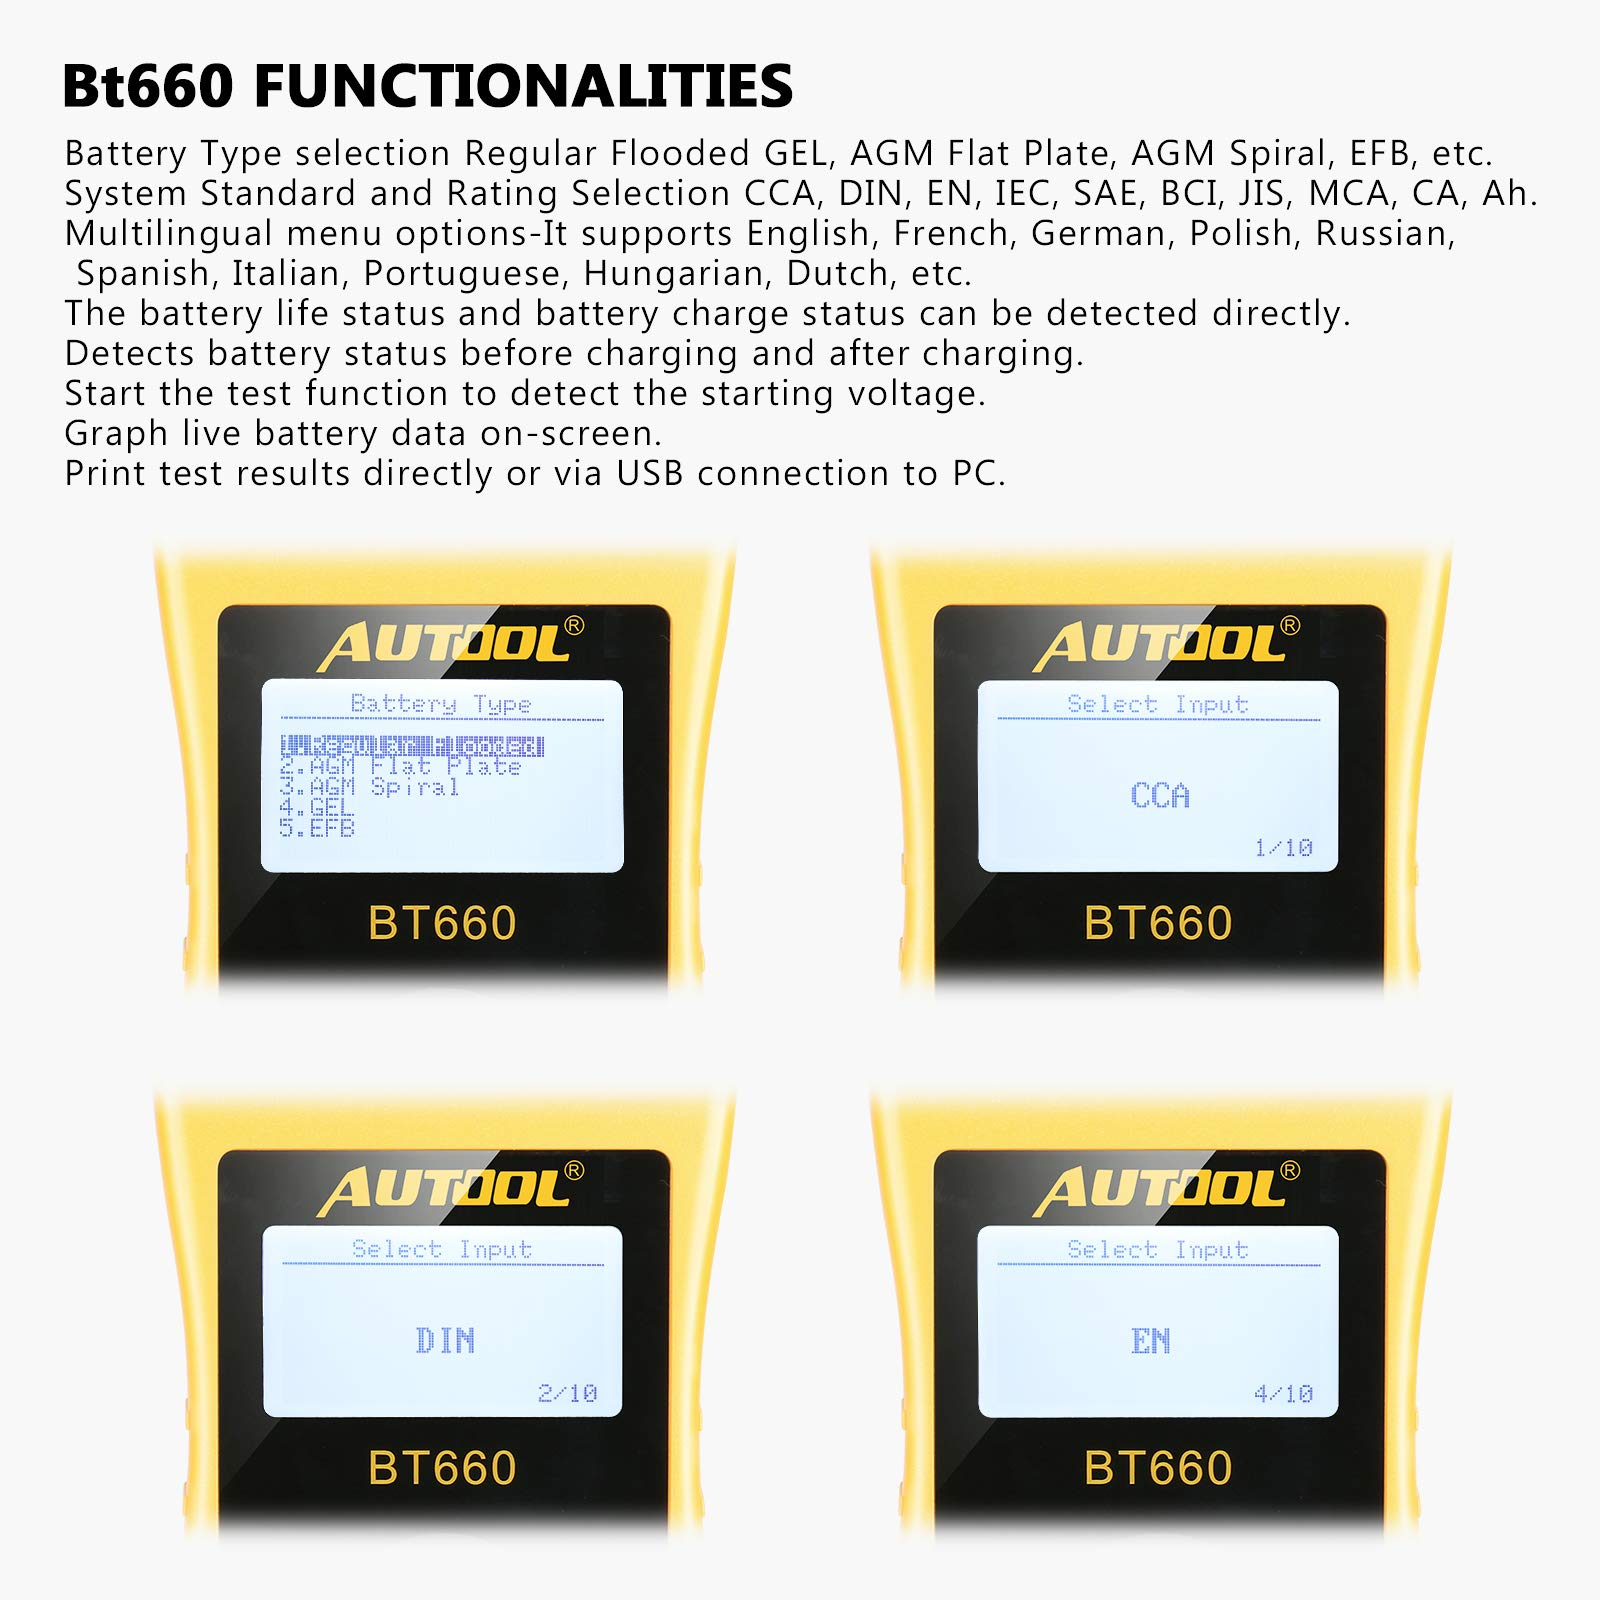 AUTOOL BT660 Battery Conductance Tester 12V/24V BT-660 Auto Battery Testers Automotive Diagnostic Tools for Heavy Duty Trucks, Light Duty Truck, Cars by AUTOOL (Image #5)